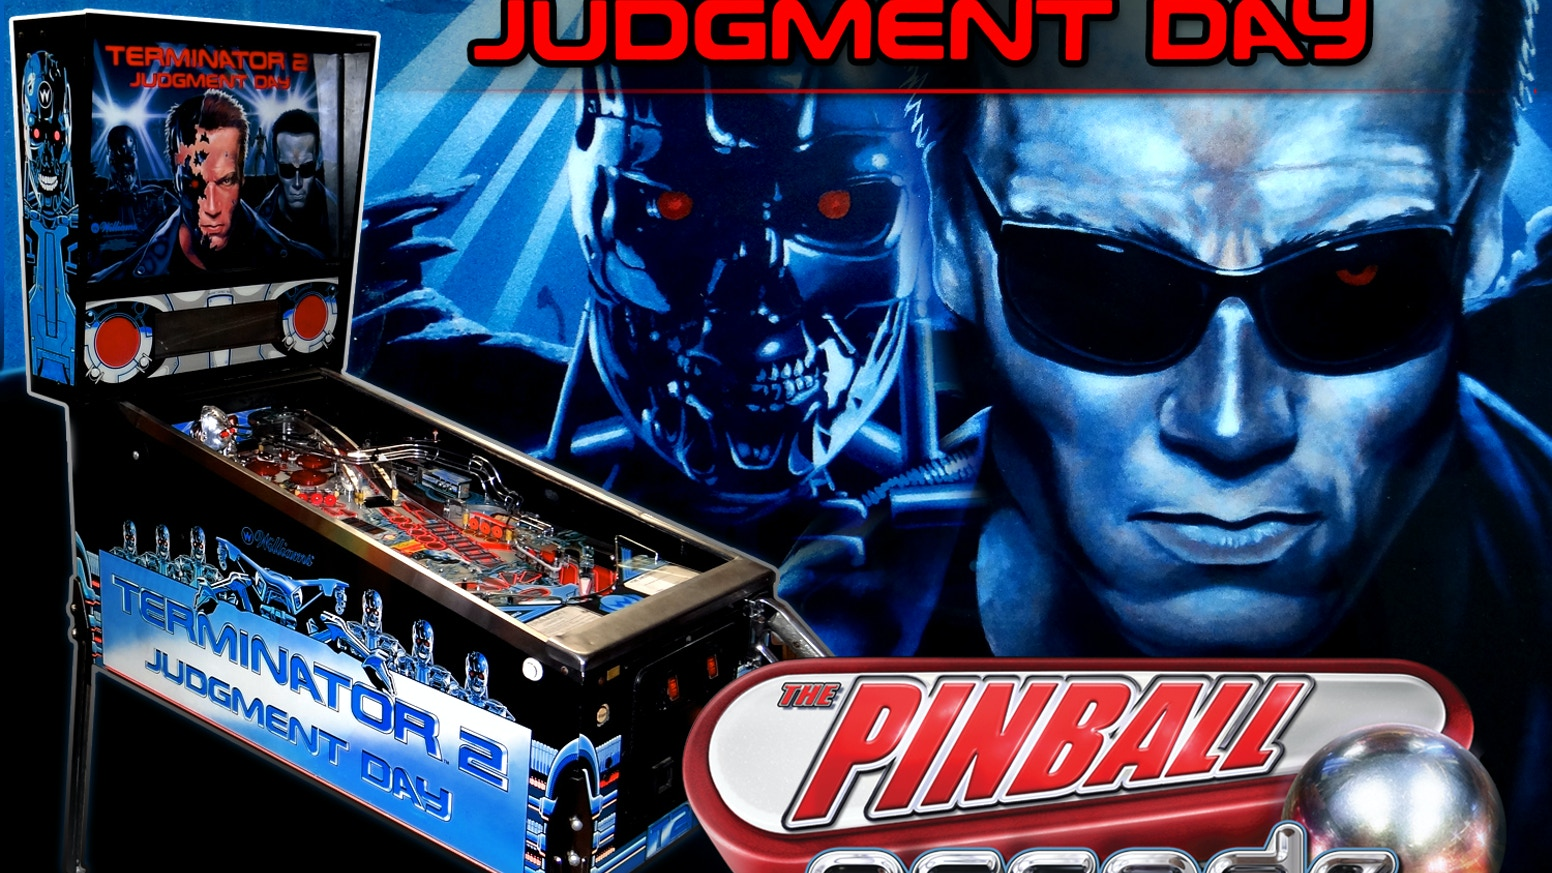 Pinball Arcade: Terminator 2 Judgment Day by FarSight